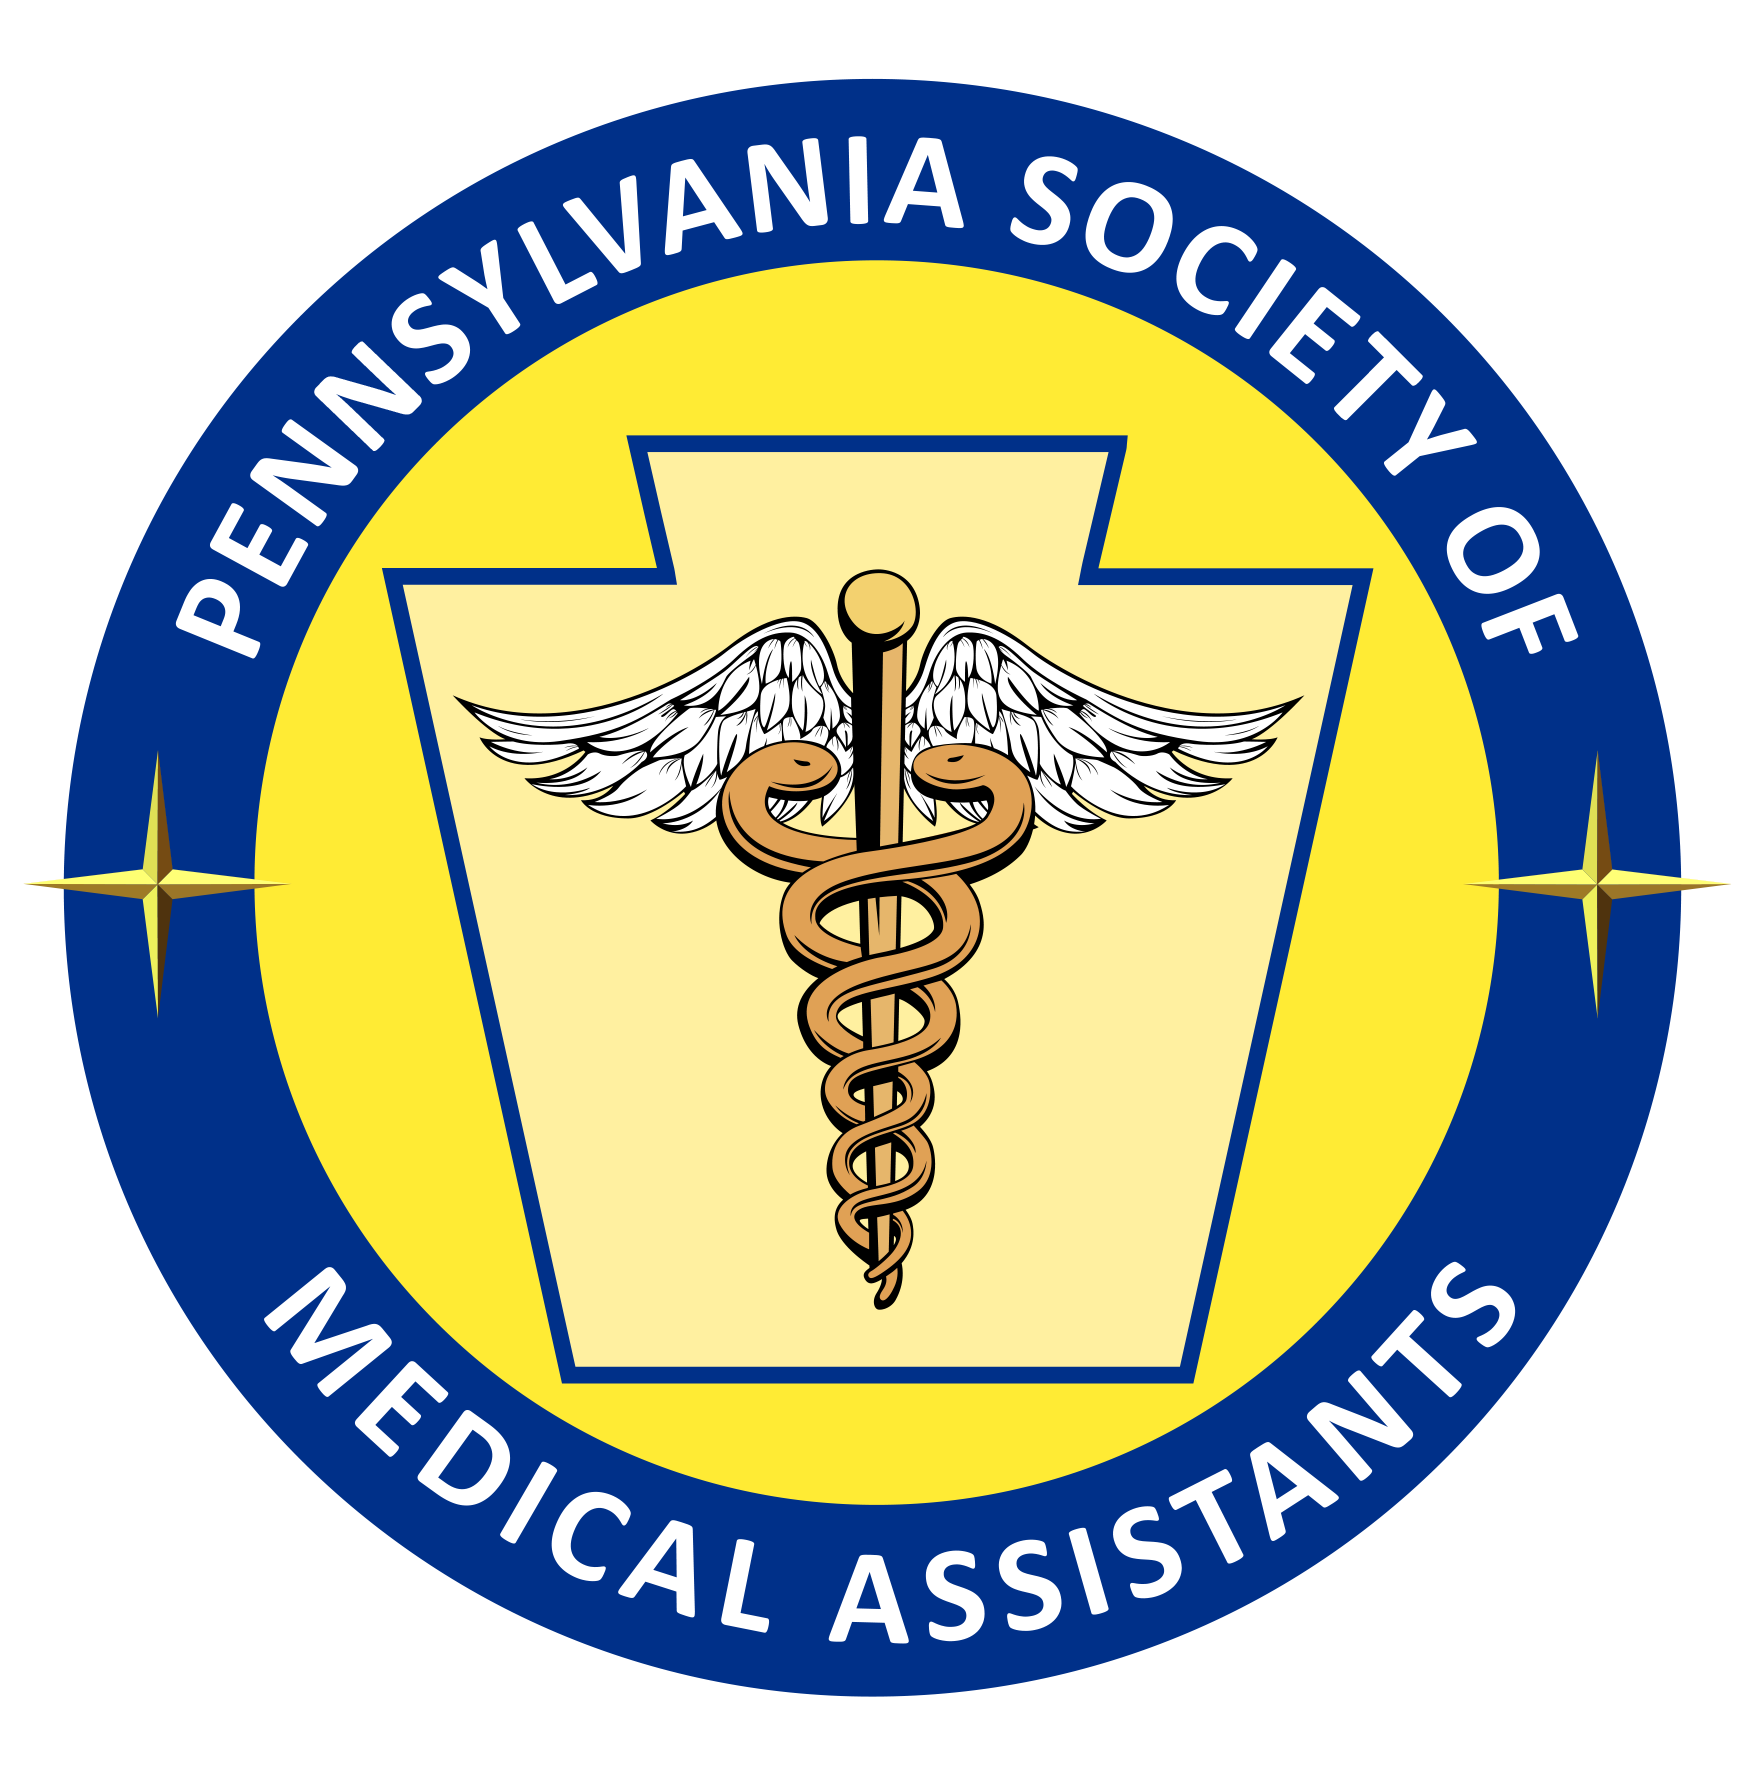 Pennsylvania Society of Medical Assistants logo